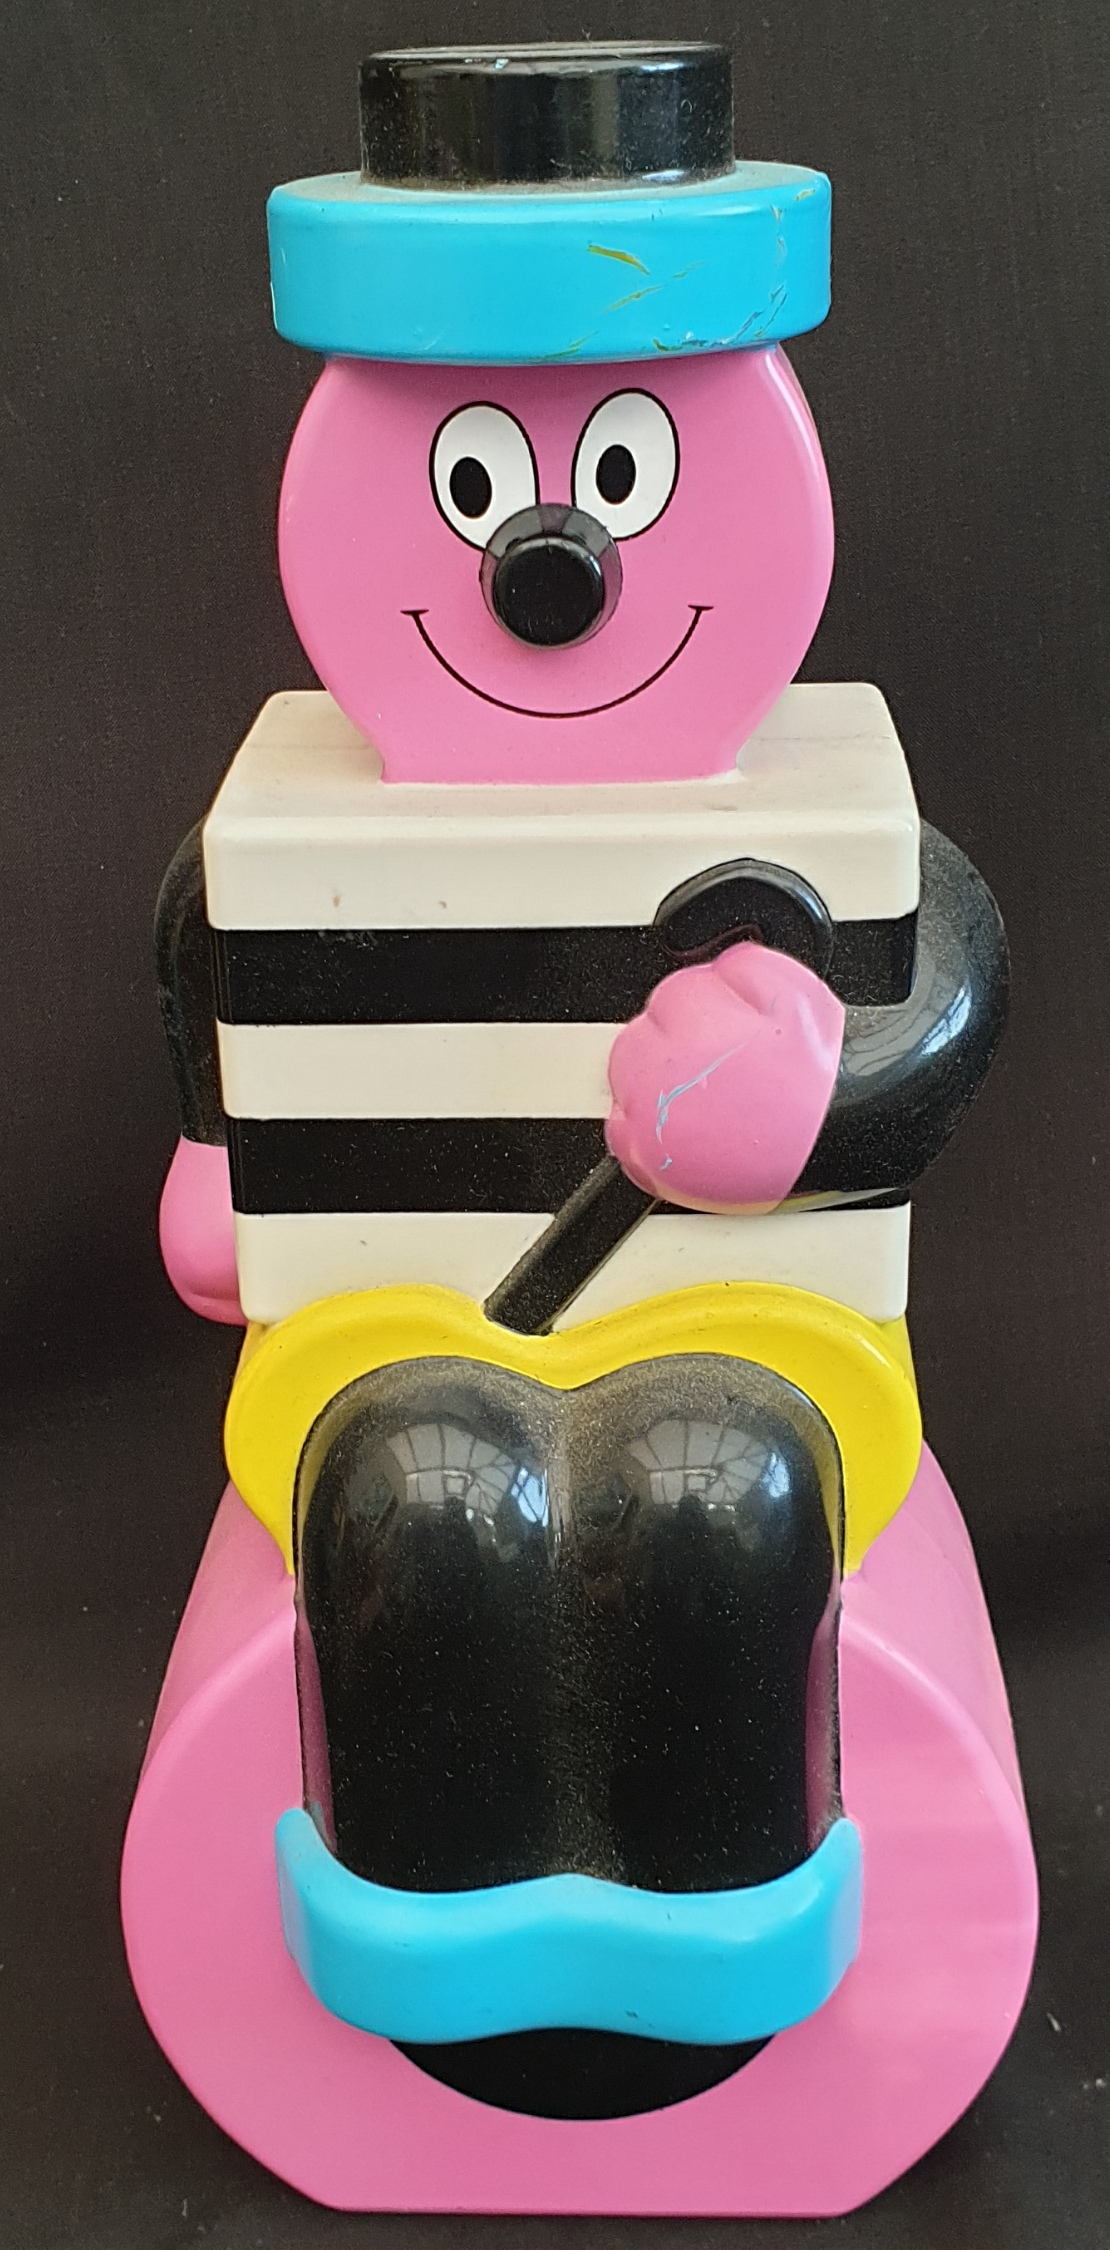 Novelty Bassett's Allsorts Money Box & CD Holder - Image 2 of 3